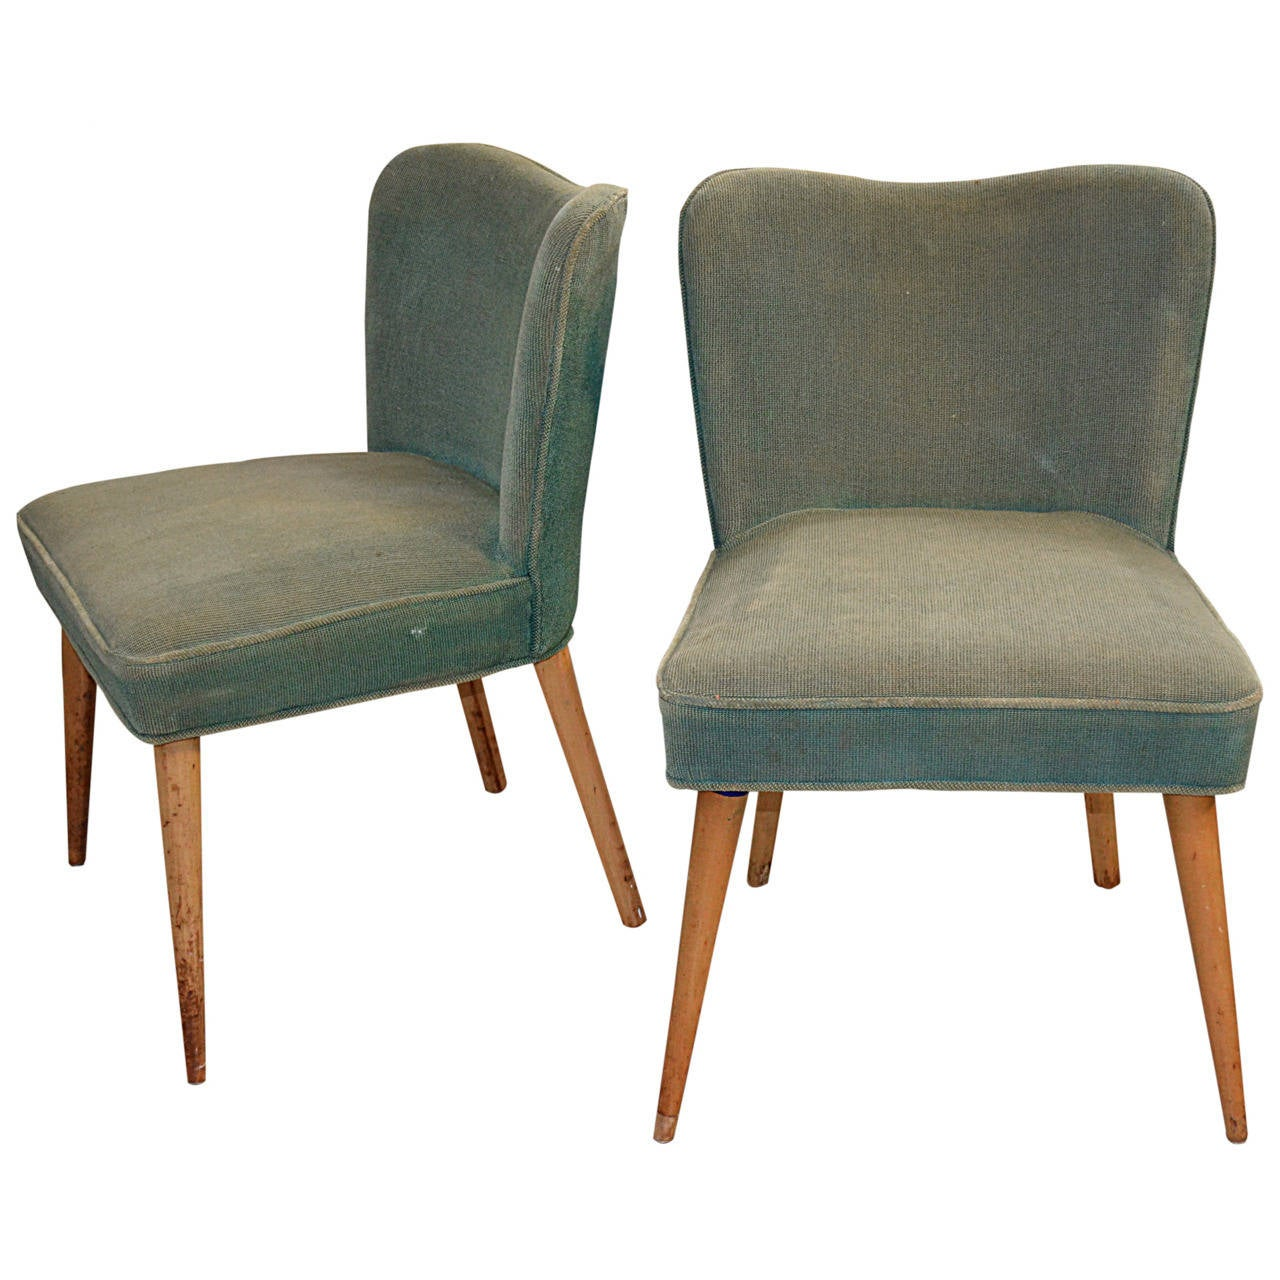 Pair of Modernist Side Chairs 1